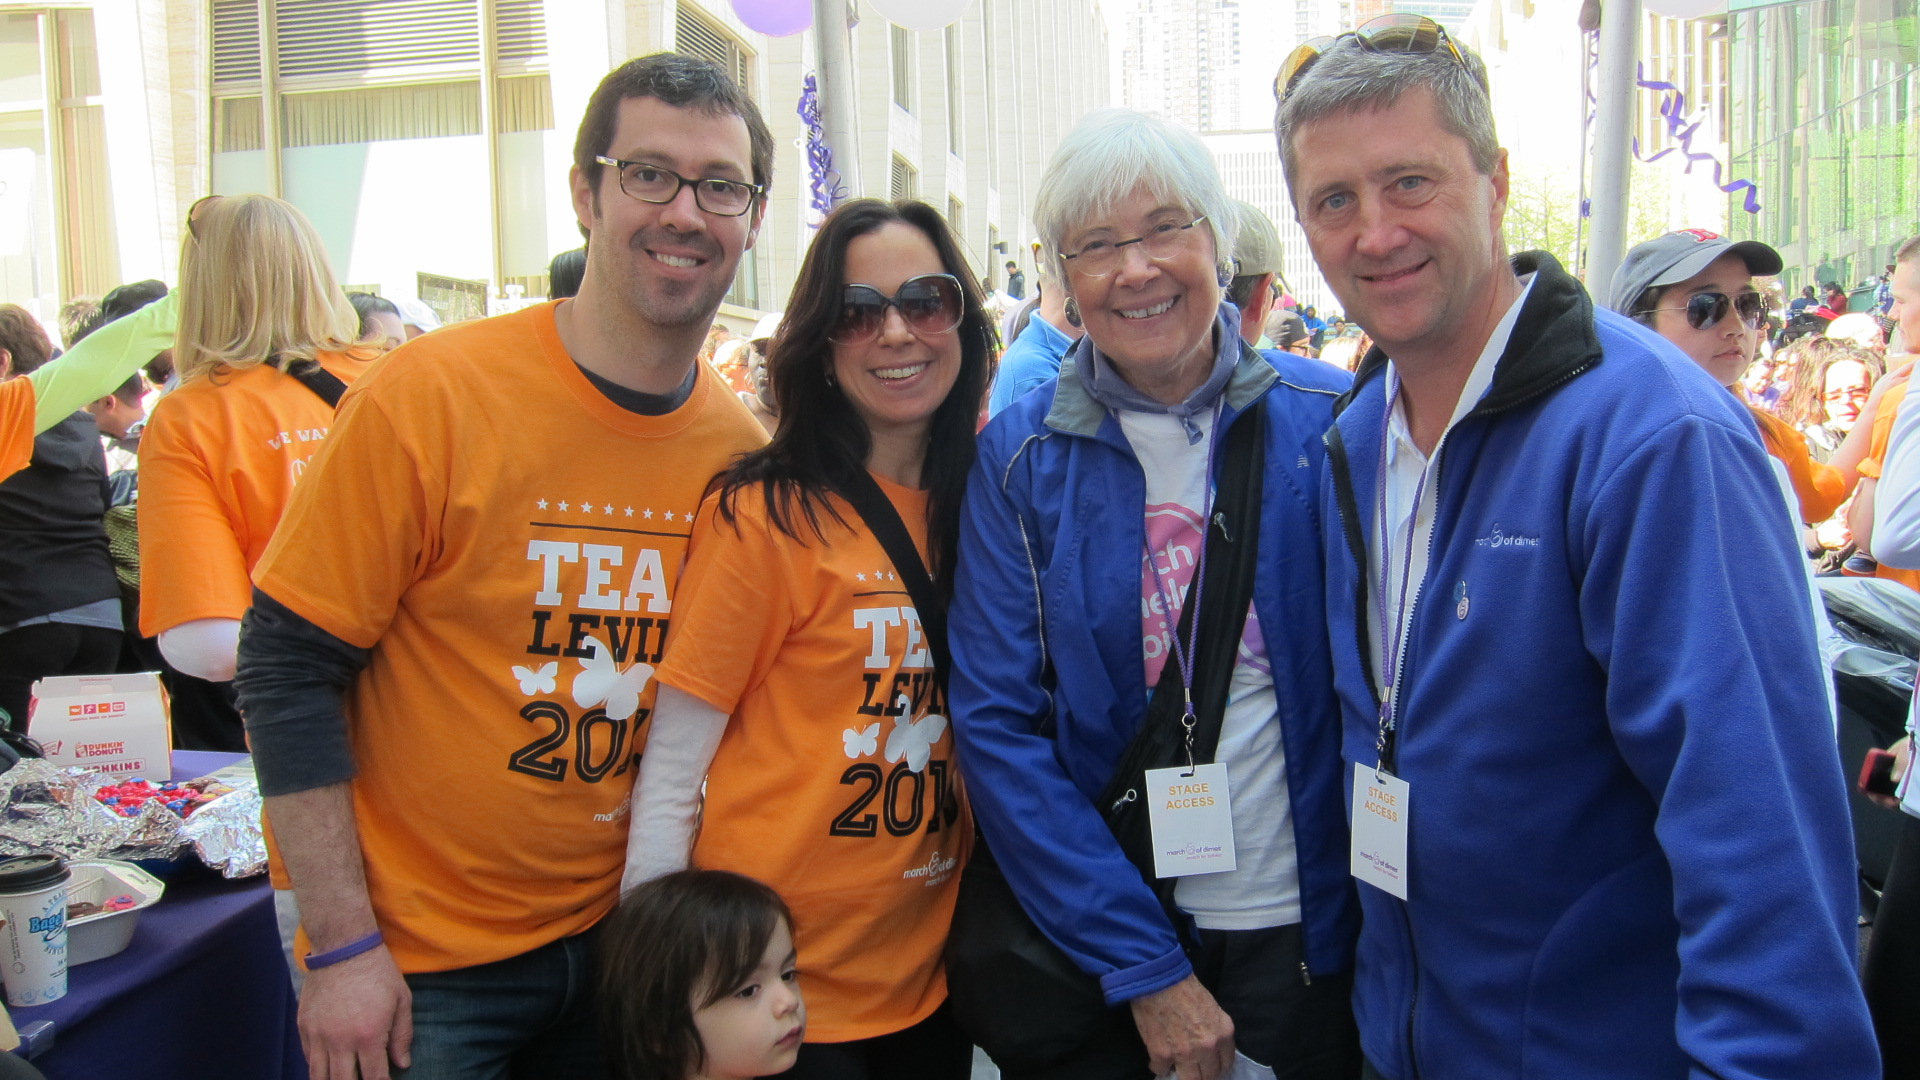 josh--paulina-levine-with-dr-jennifer-howse--march-of-dimes-foundation-president-and-bill-fitzgerald--ge-aviations-general-manager--2013-national-march-for-babies-chairman_13096485963_o.jpg